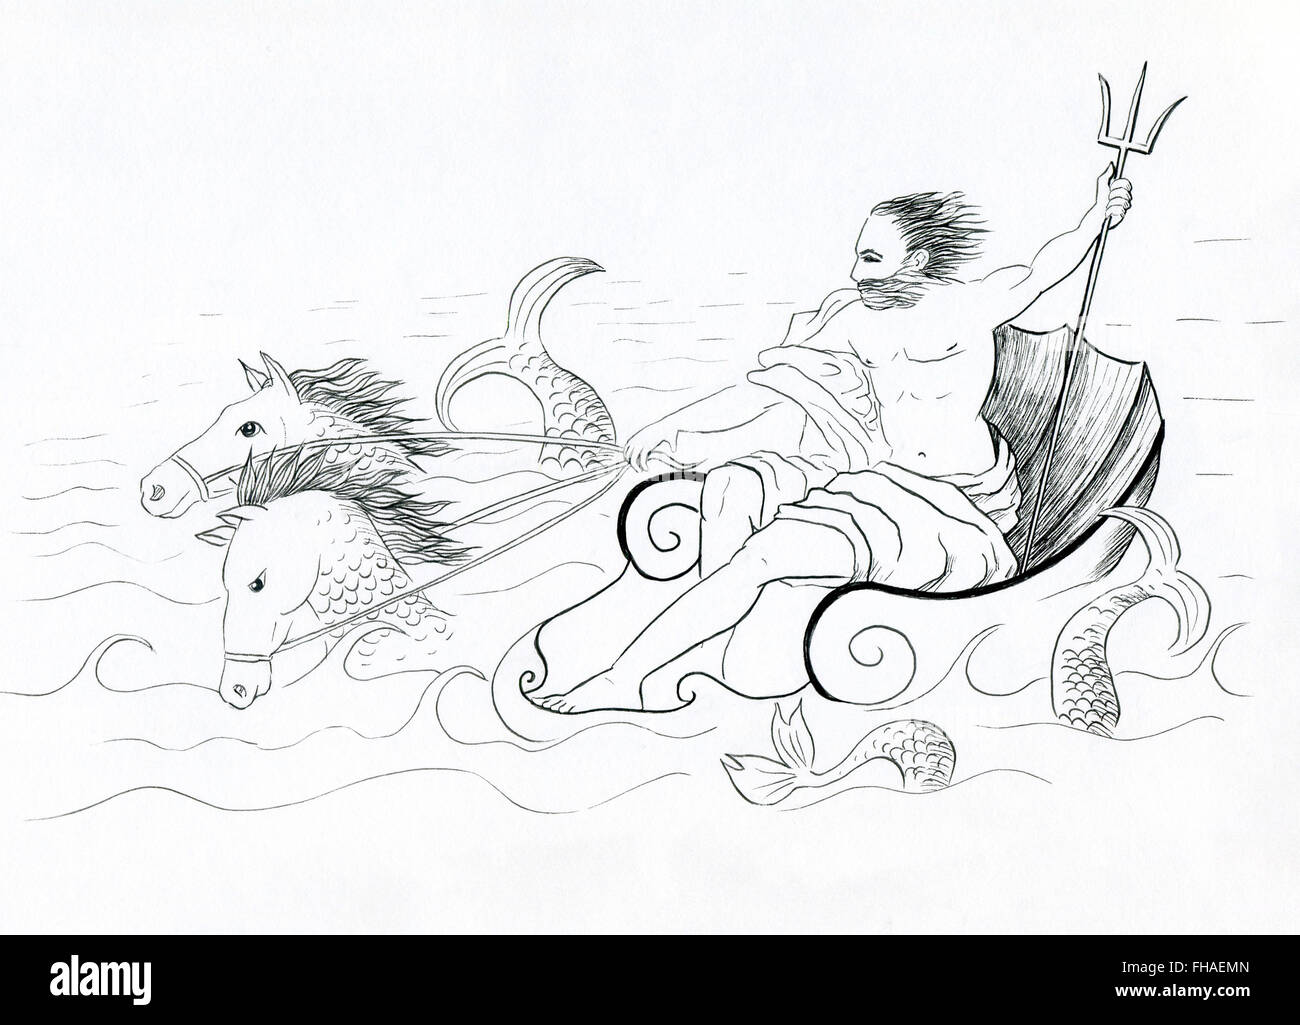 Neptune, Roman god of the sea in his chariot line drawing illustration - Stock Image